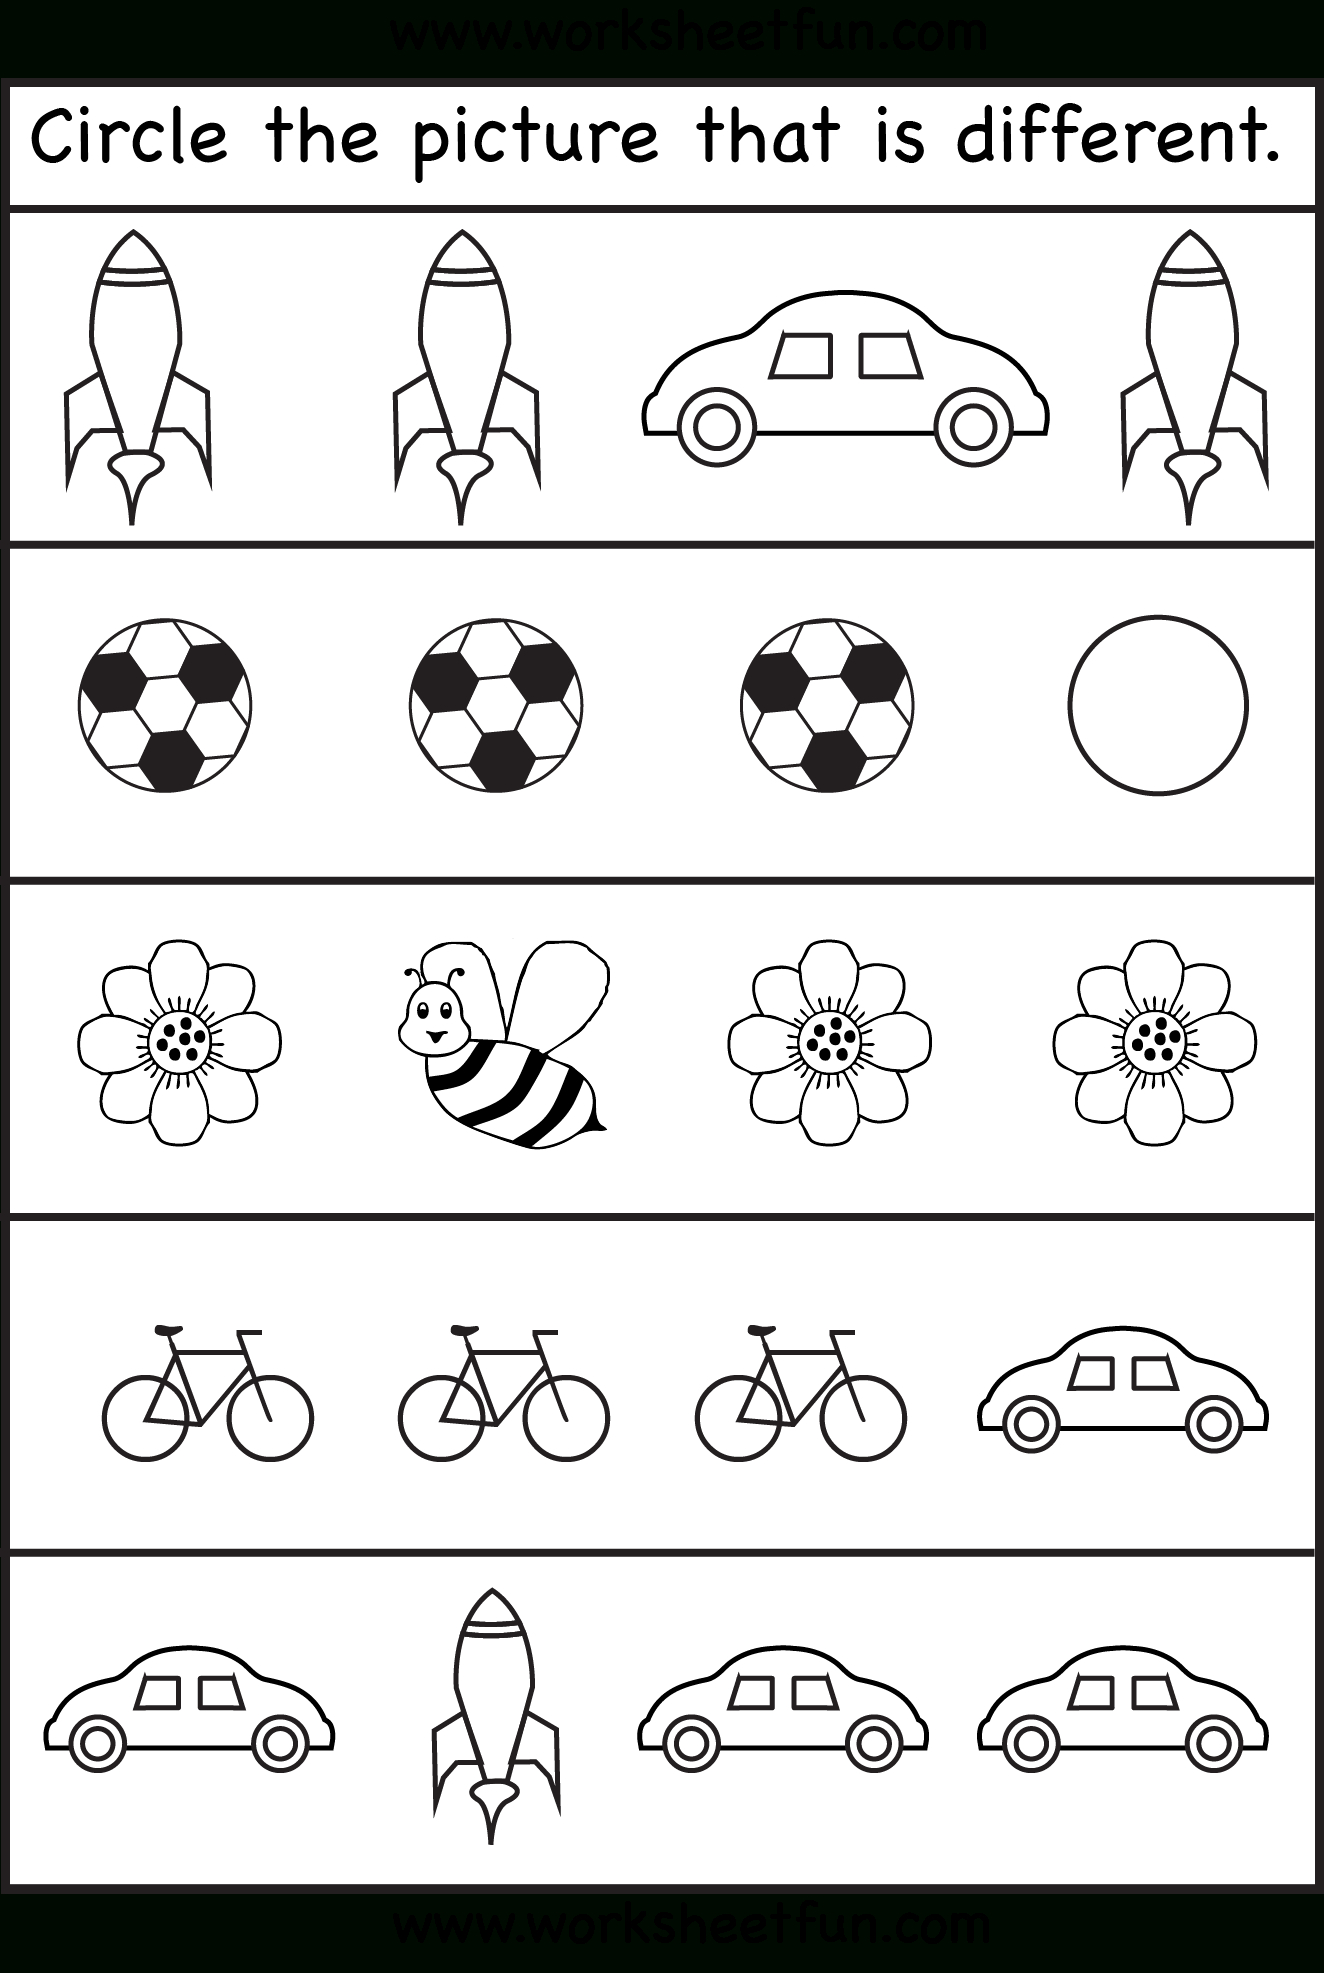 Circle The Picture That Is Different - 4 Worksheets | Preschool Work - Free Printable Activity Sheets For Kids